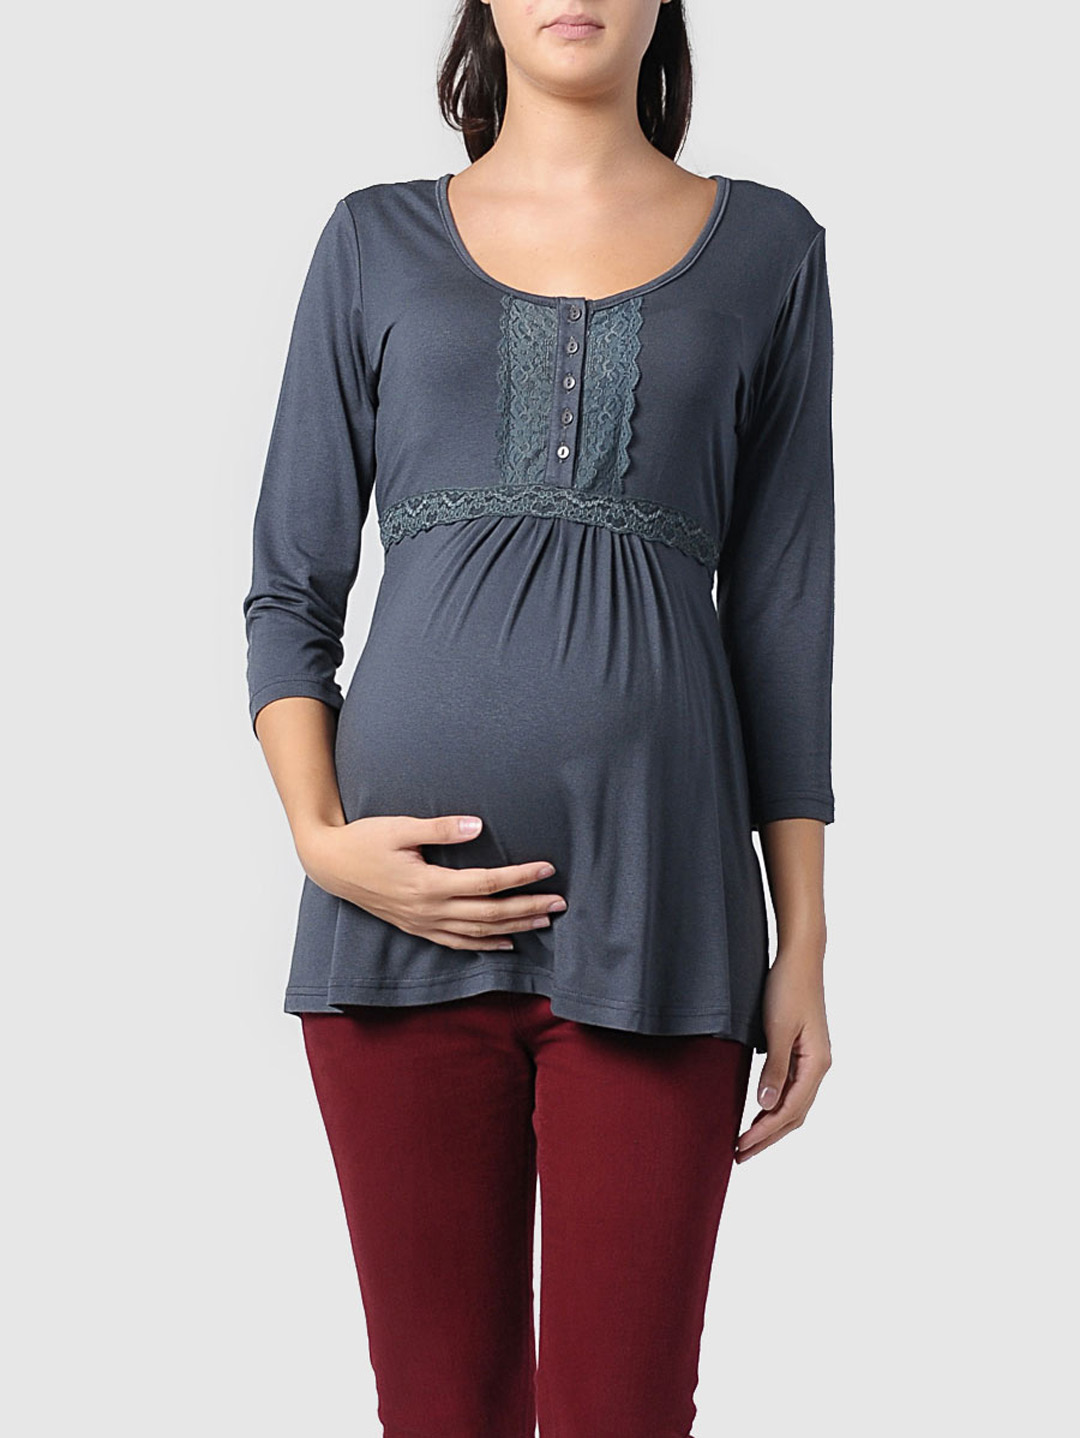 maternity wear clothes collection 2013 maternity tops